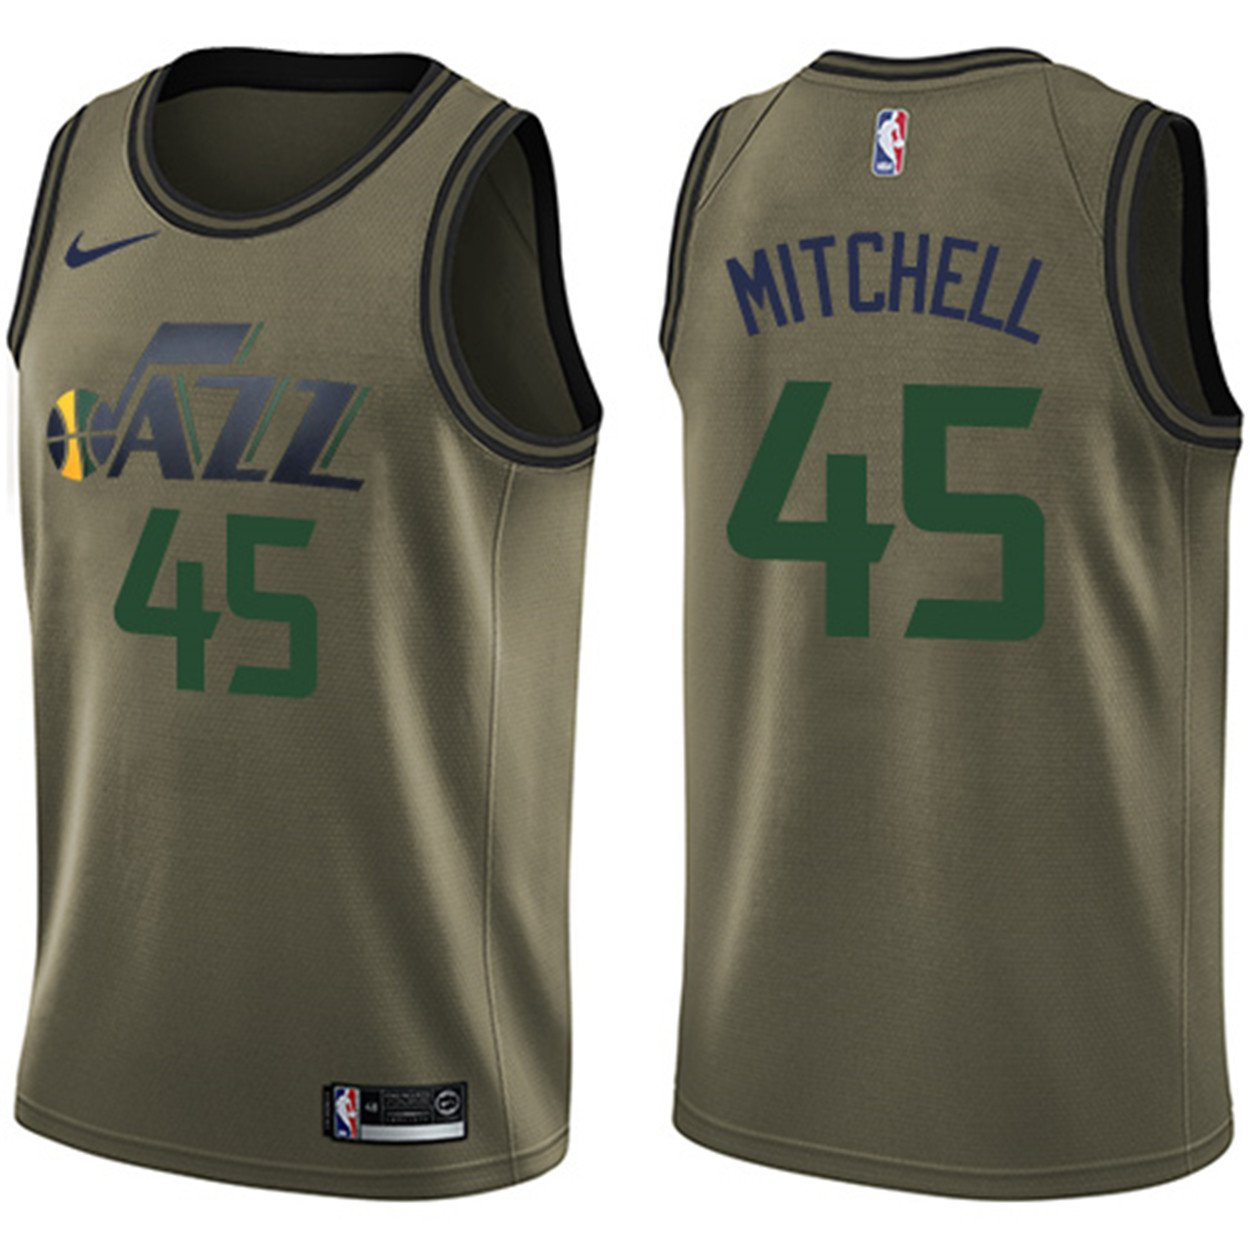 9ea1d11dfc2b Nike Men s Utah Jazz  45 Donovan Mitchell Green Swingman Jersey Salute to  Service - Green - S  Amazon.co.uk  Clothing